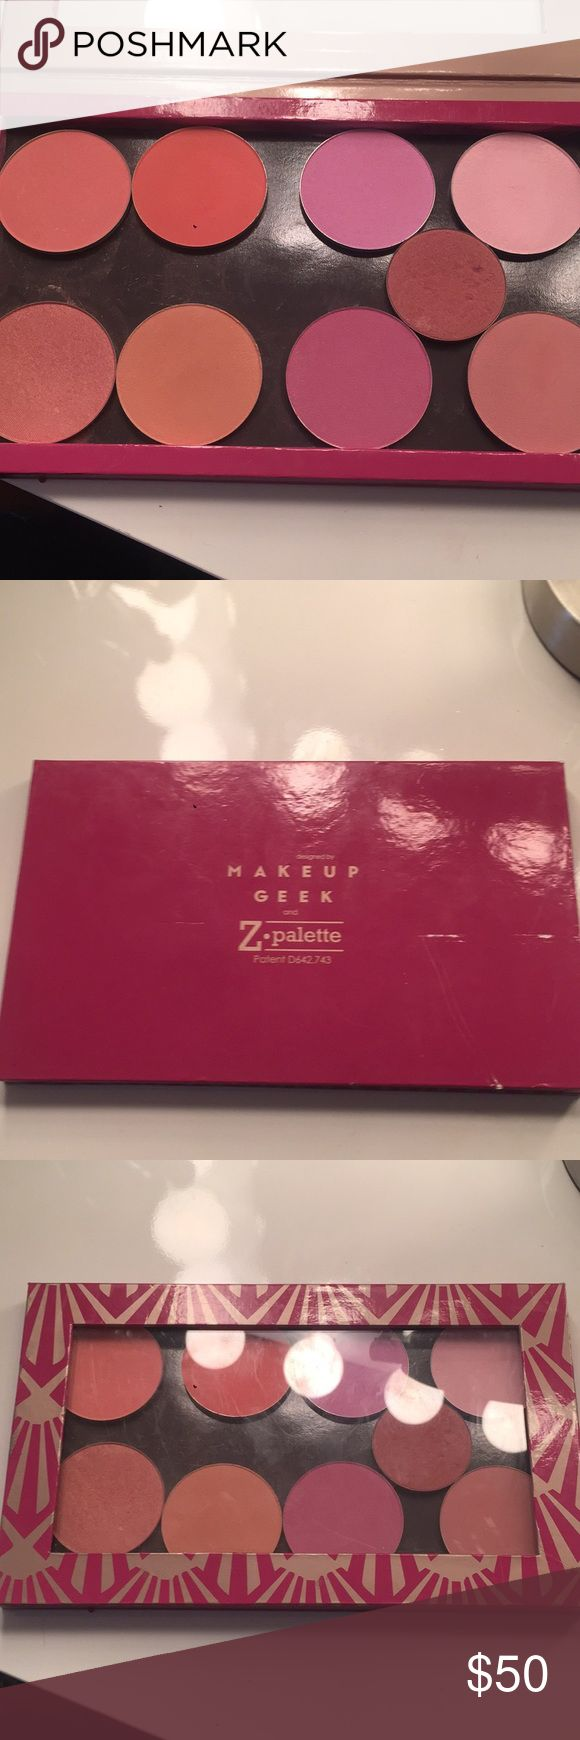 Make up geek blush pallet Get every blush in there plus a Lorca blush that is glued to the Z pallet. It includes 8 make up feel blushes and the Z pallet to store it in makeup geek Makeup Blush